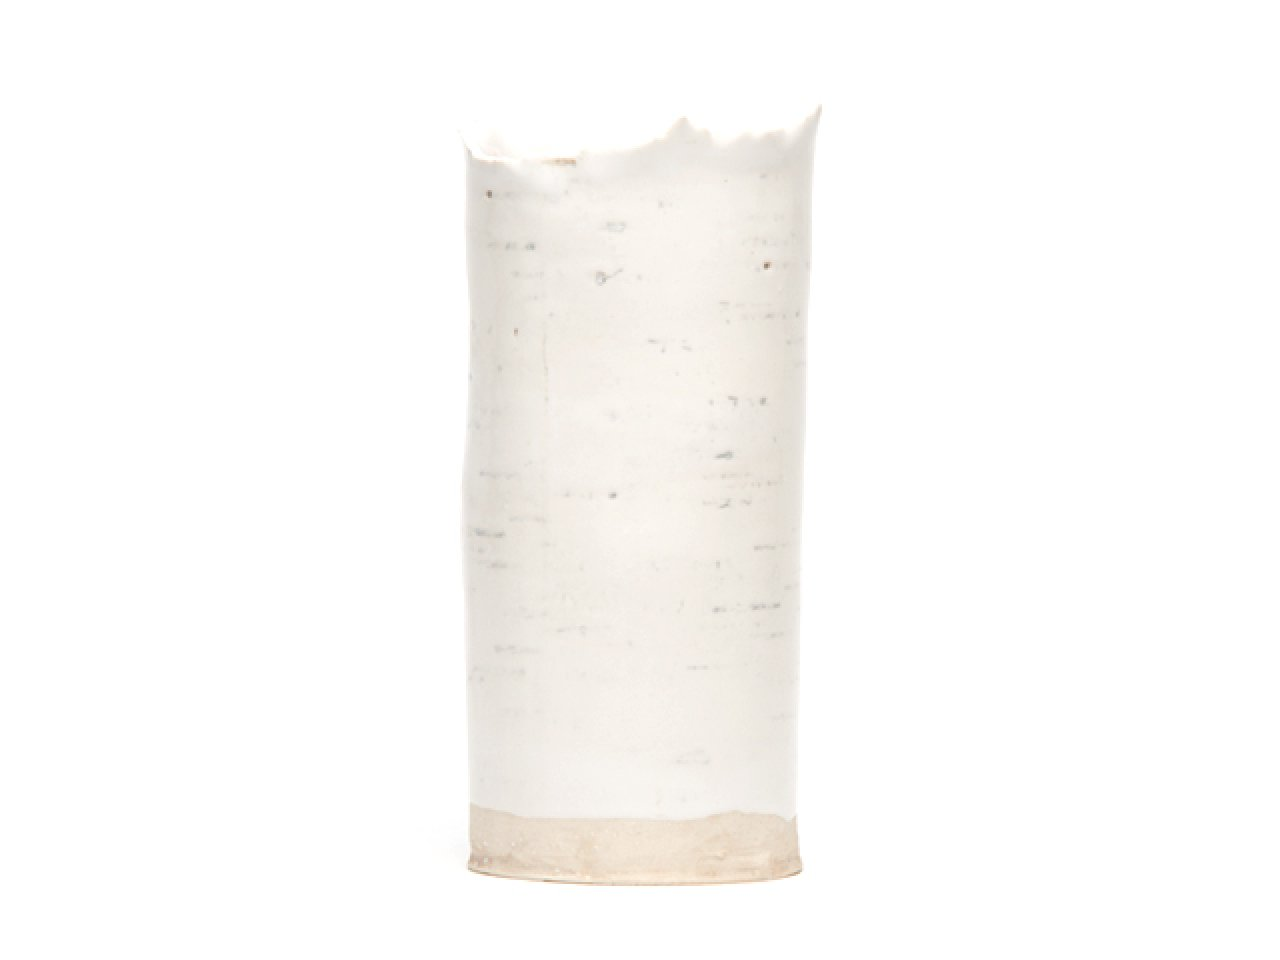 Birch Bark Porcelain Vases ($75-$85)